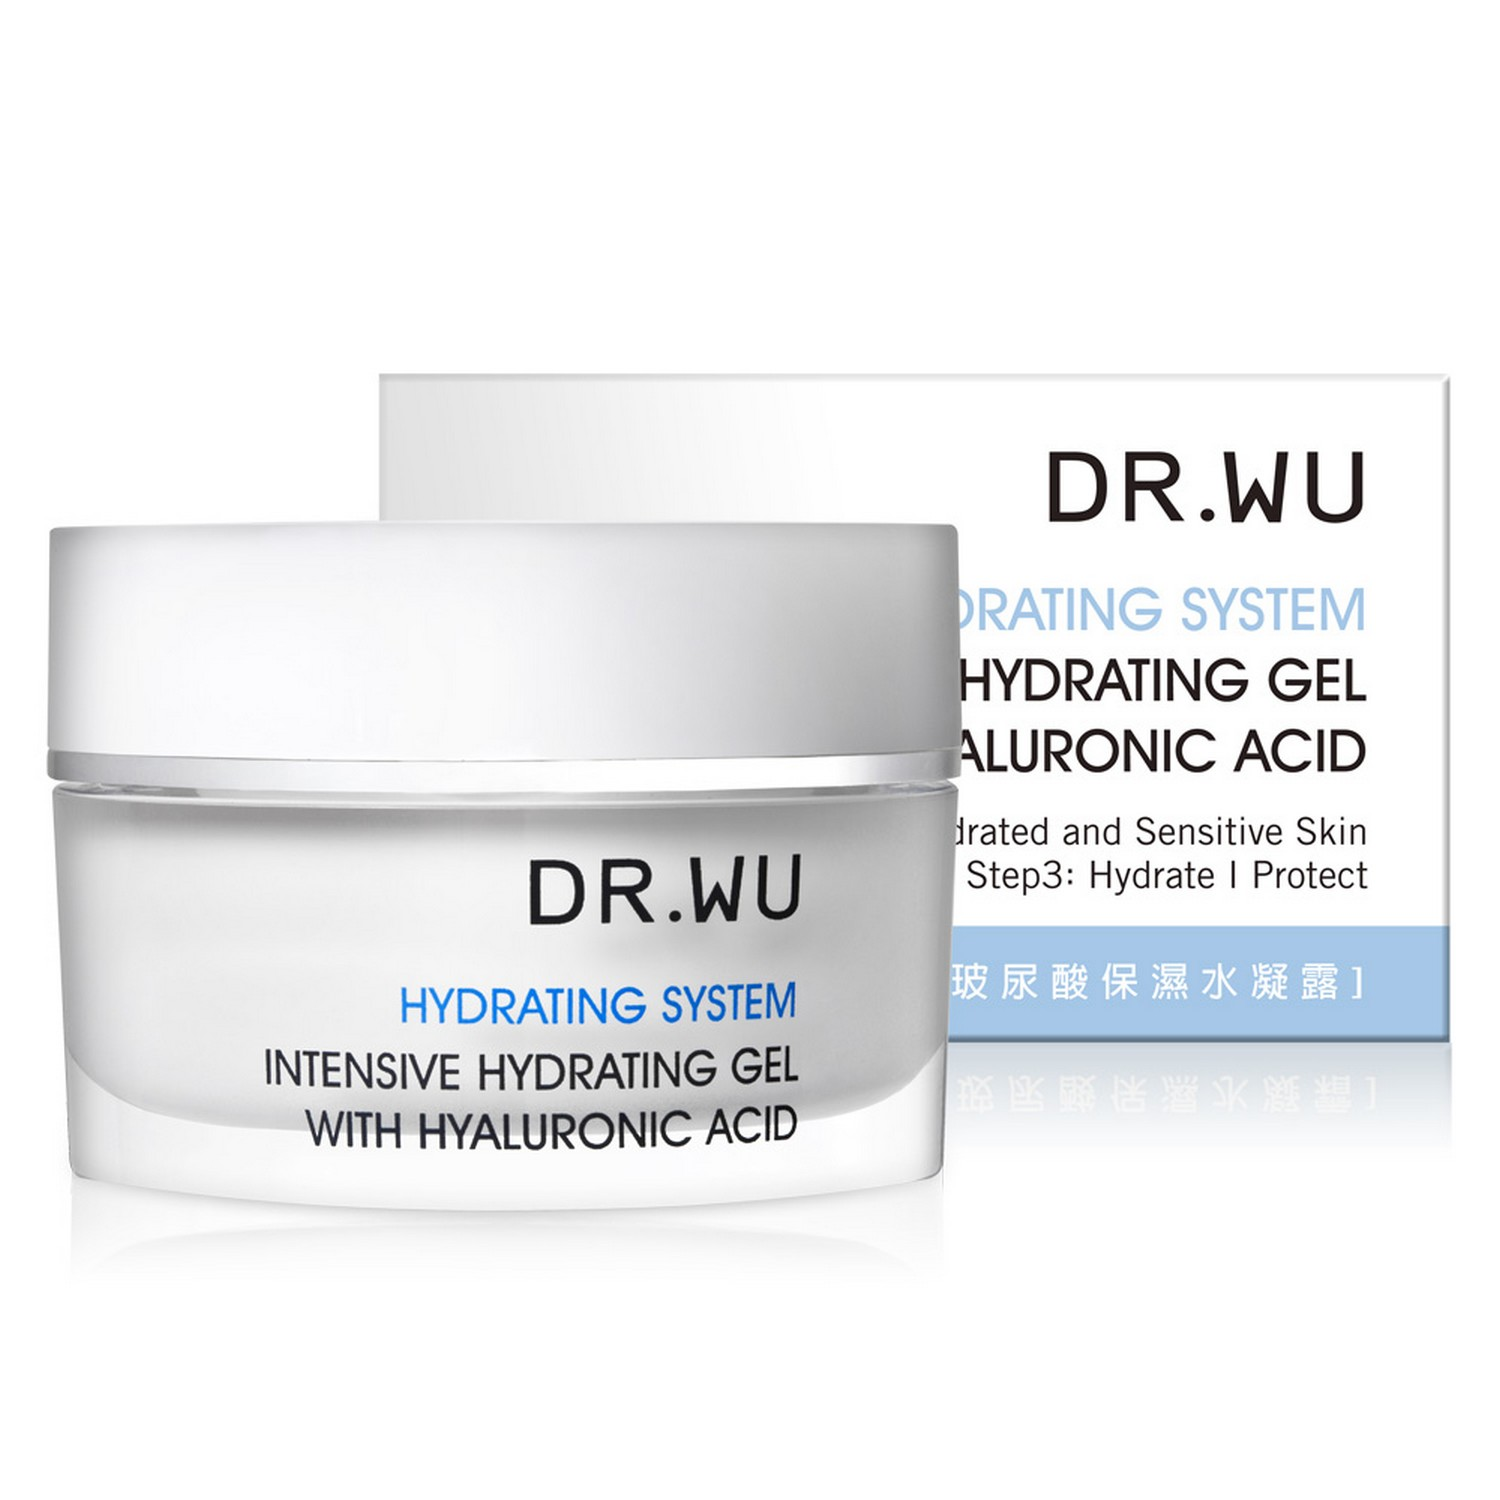 Dr. Wu INTENSIVE HYDRATING GEL WITH HYALURONIC ACID (30 ml)